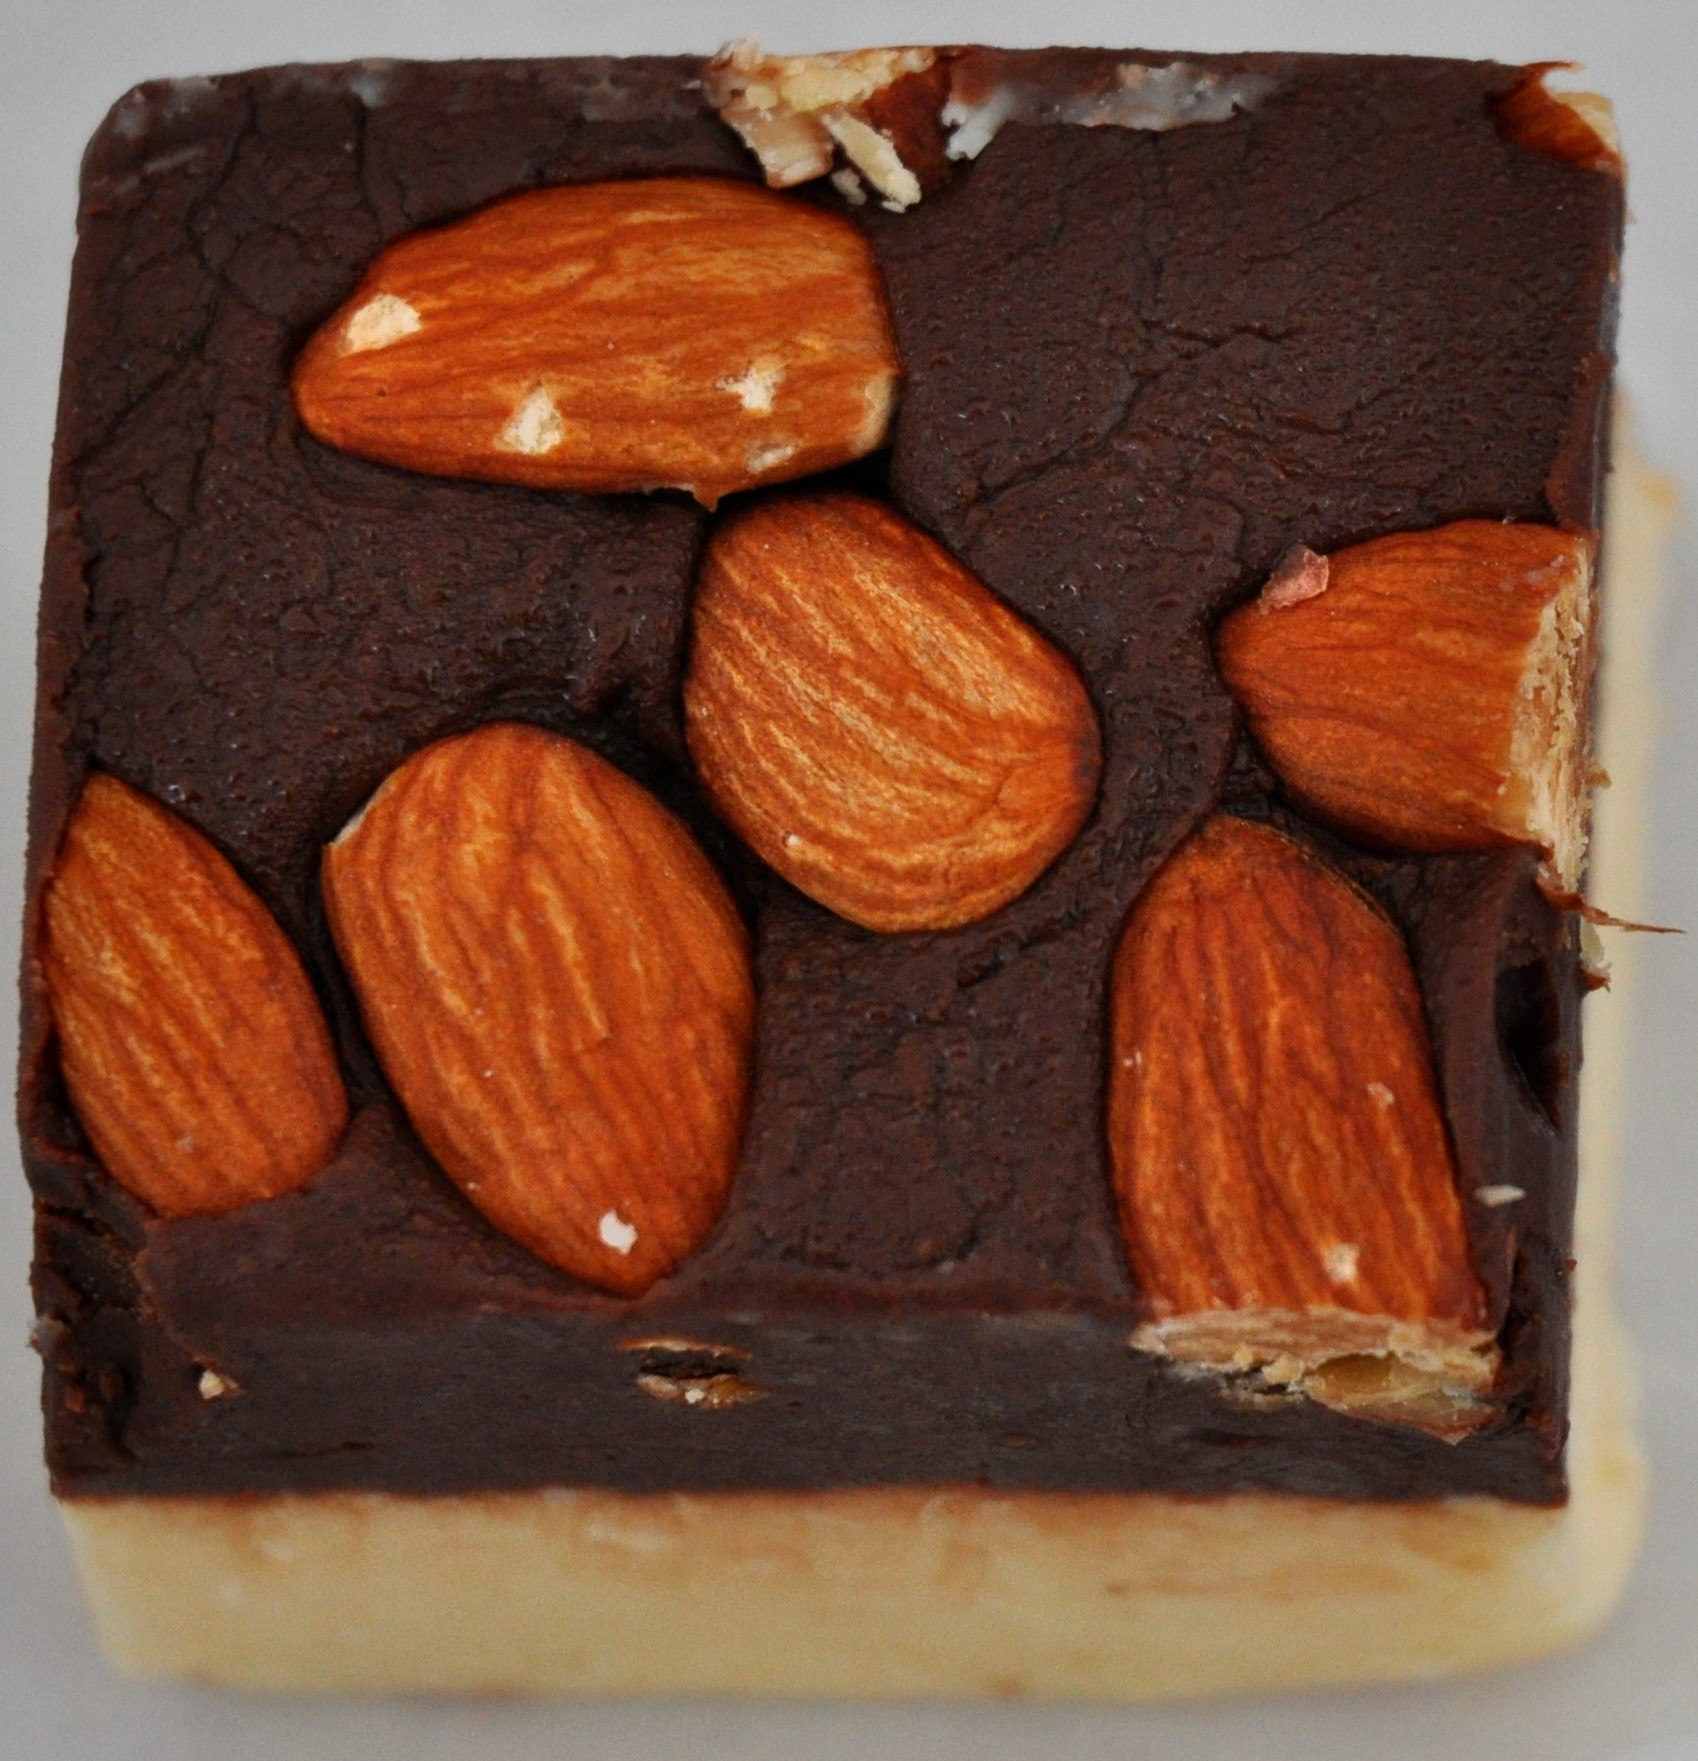 Chocolate-coconut fudge with almonds from Pete's Perfect Toffee. Photo copyright 2013 by Zachary D. Lyons.